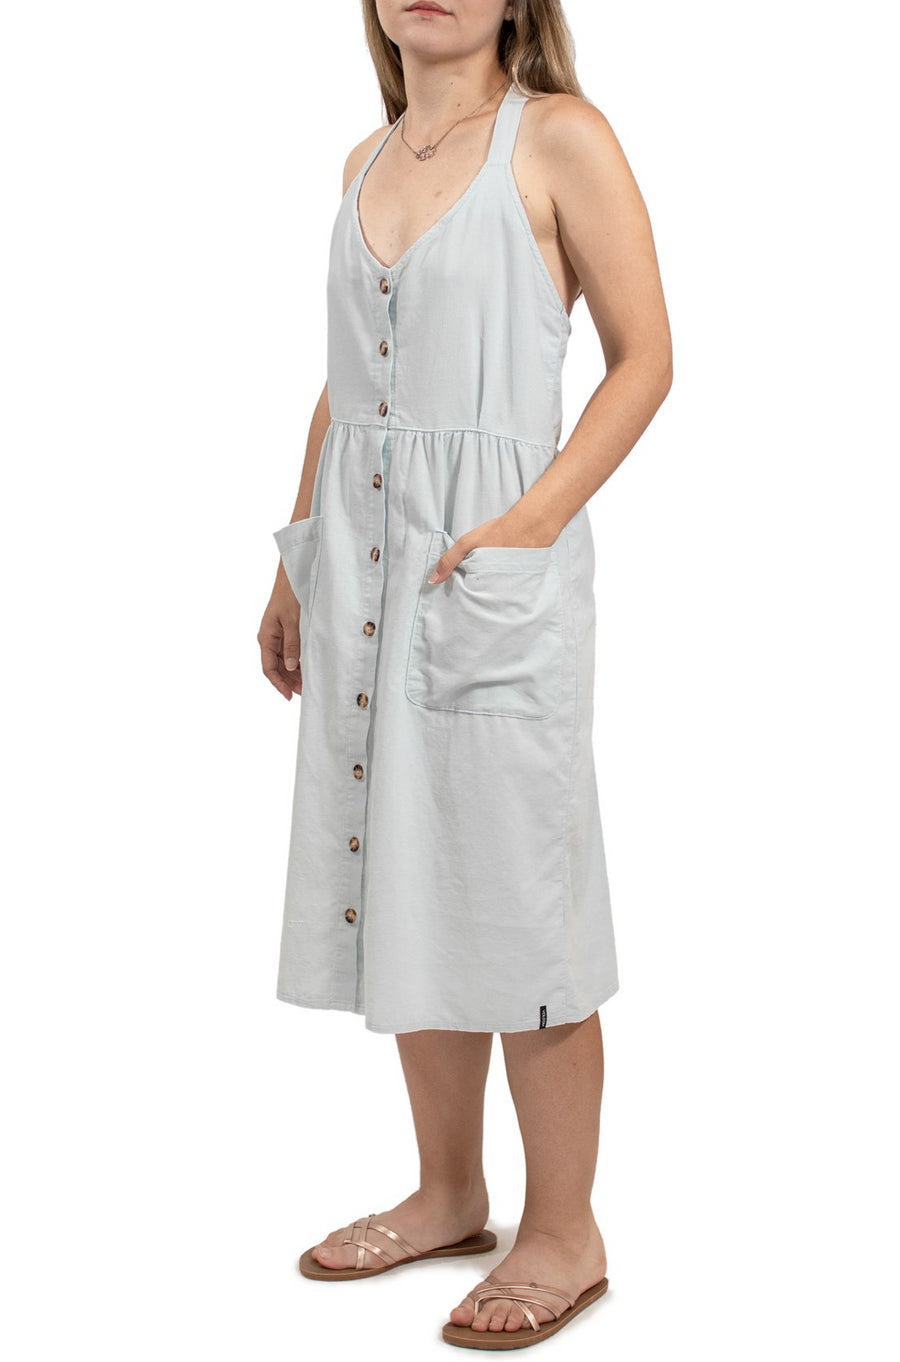 Volcom Re Cording Dress - Smokey Blue